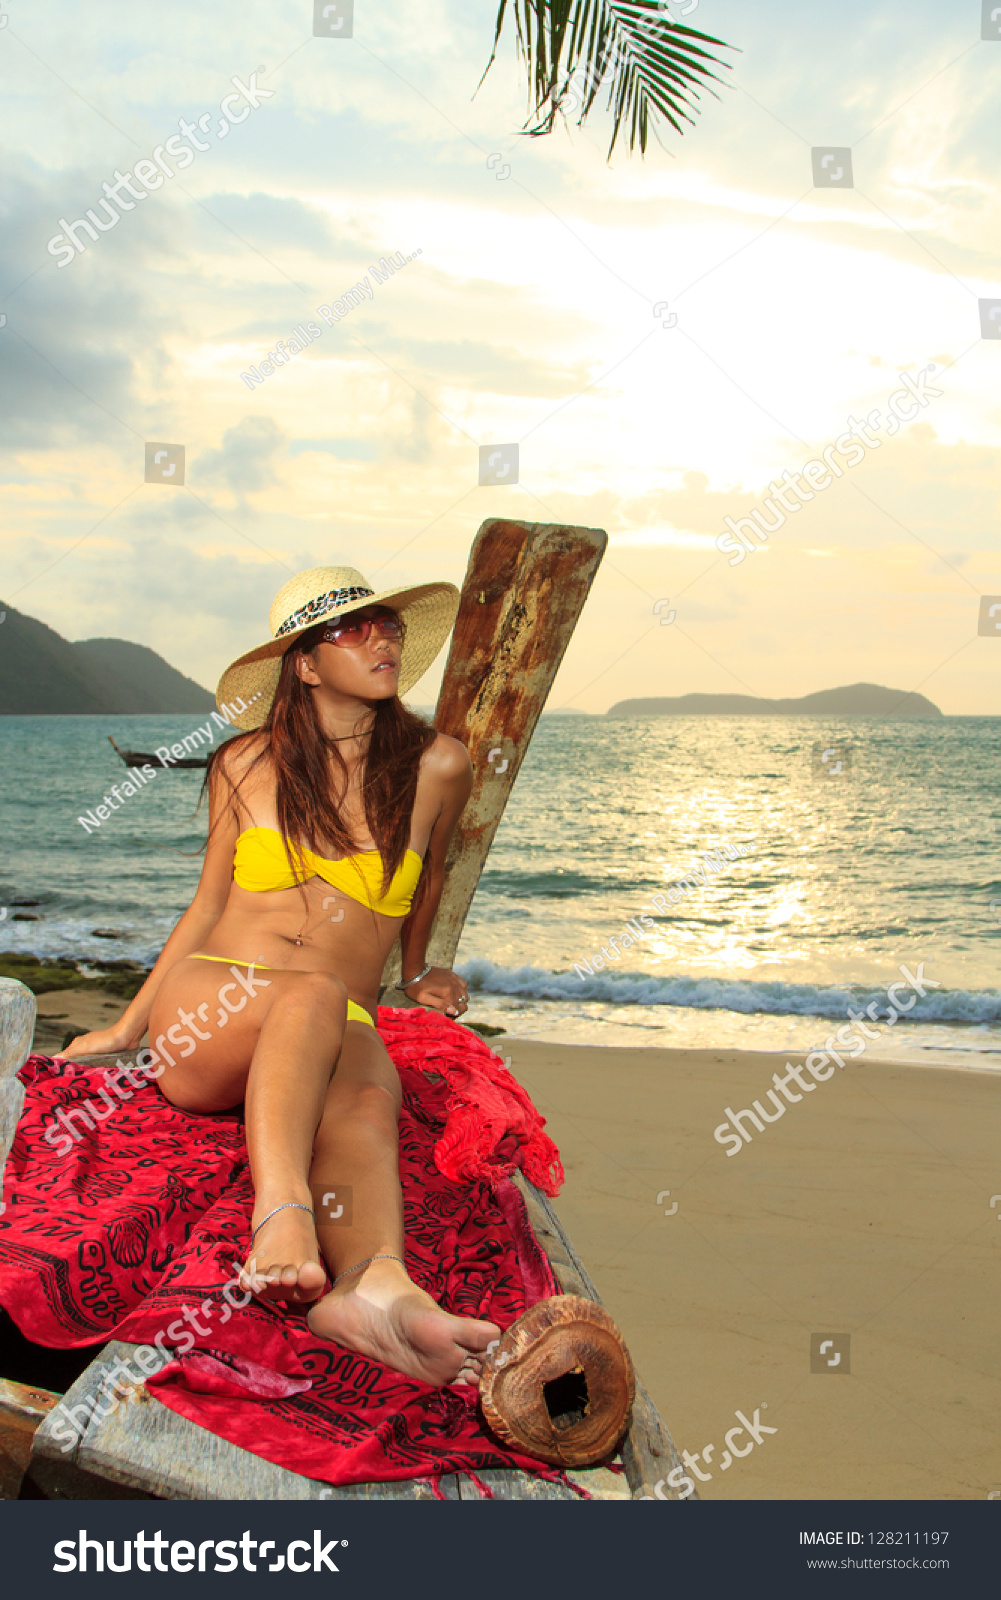 sunrise beach girls Sunrise beach's best 100% free online dating site meet loads of available single women in sunrise beach with mingle2's sunrise beach dating services find a girlfriend or lover in sunrise beach, or just have fun flirting online with sunrise beach single girls.